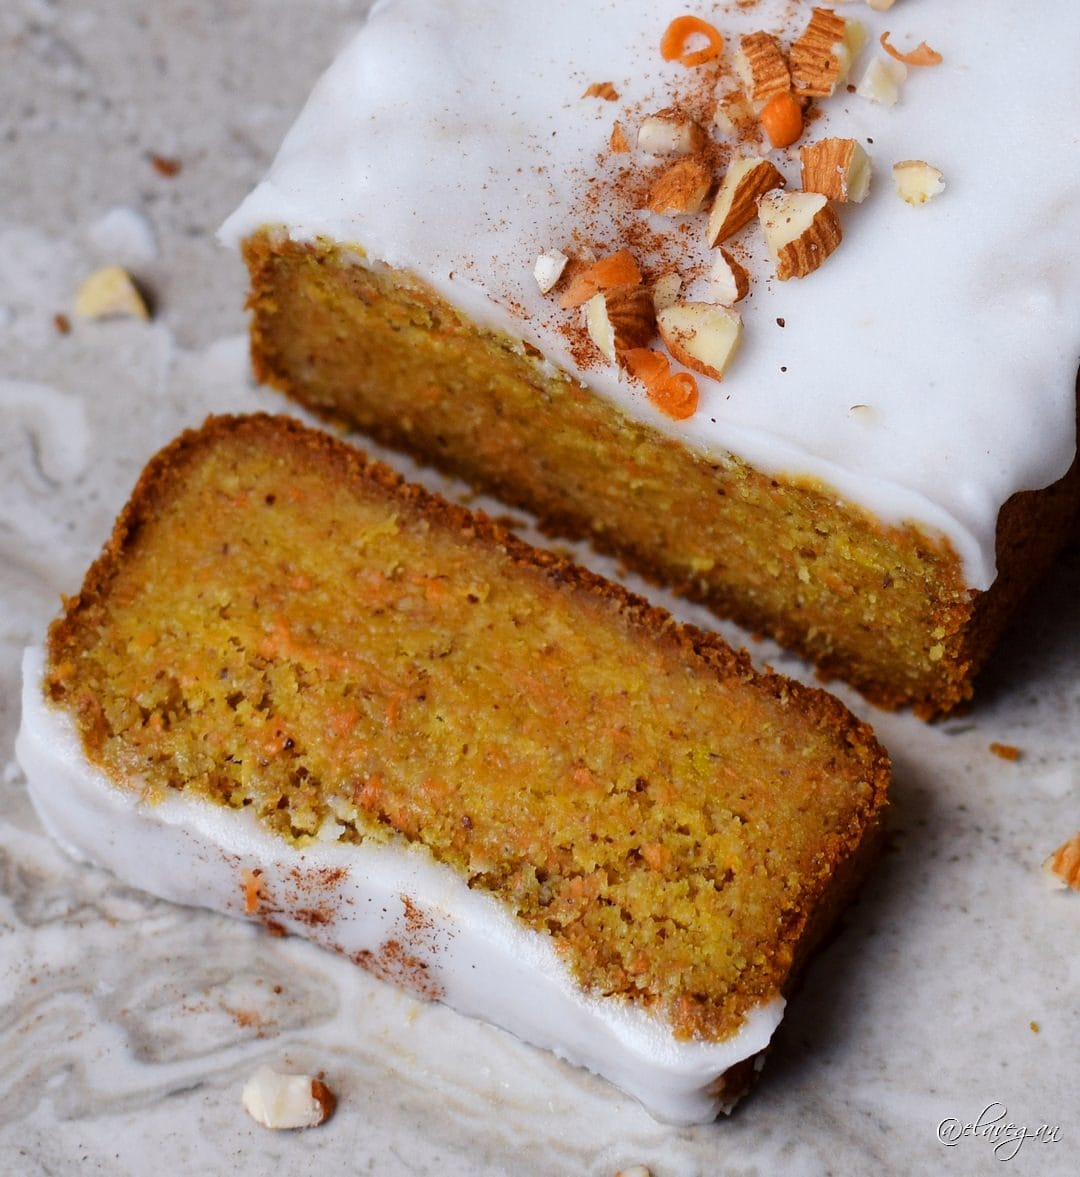 Vegan gluten free carrot cake with low-fat and low calorie icing